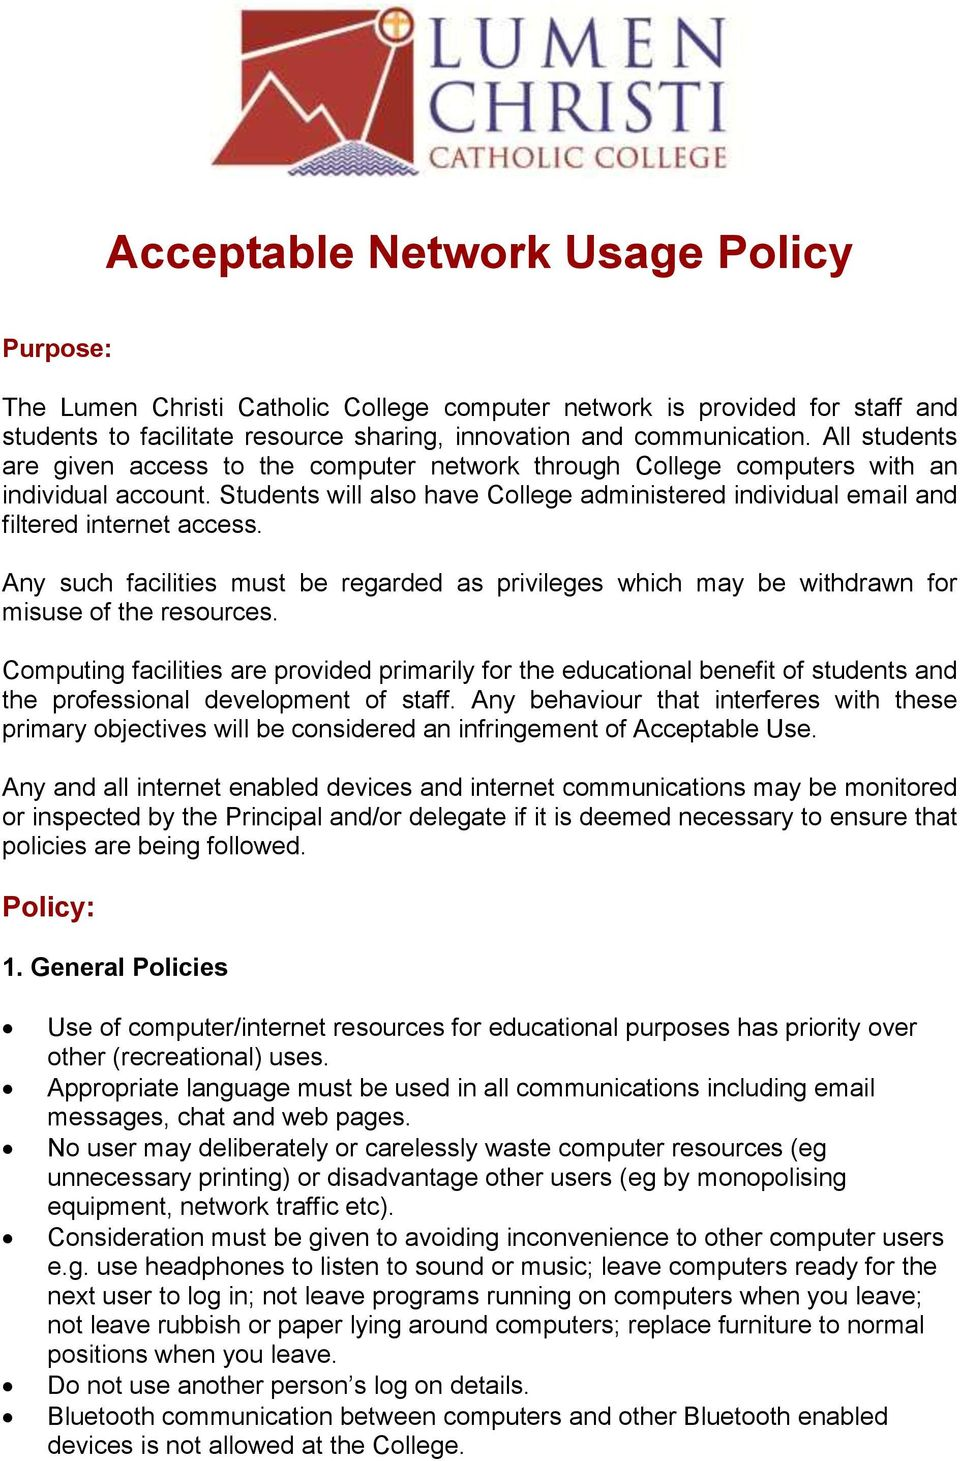 Acceptable Network Usage Policy Pdf